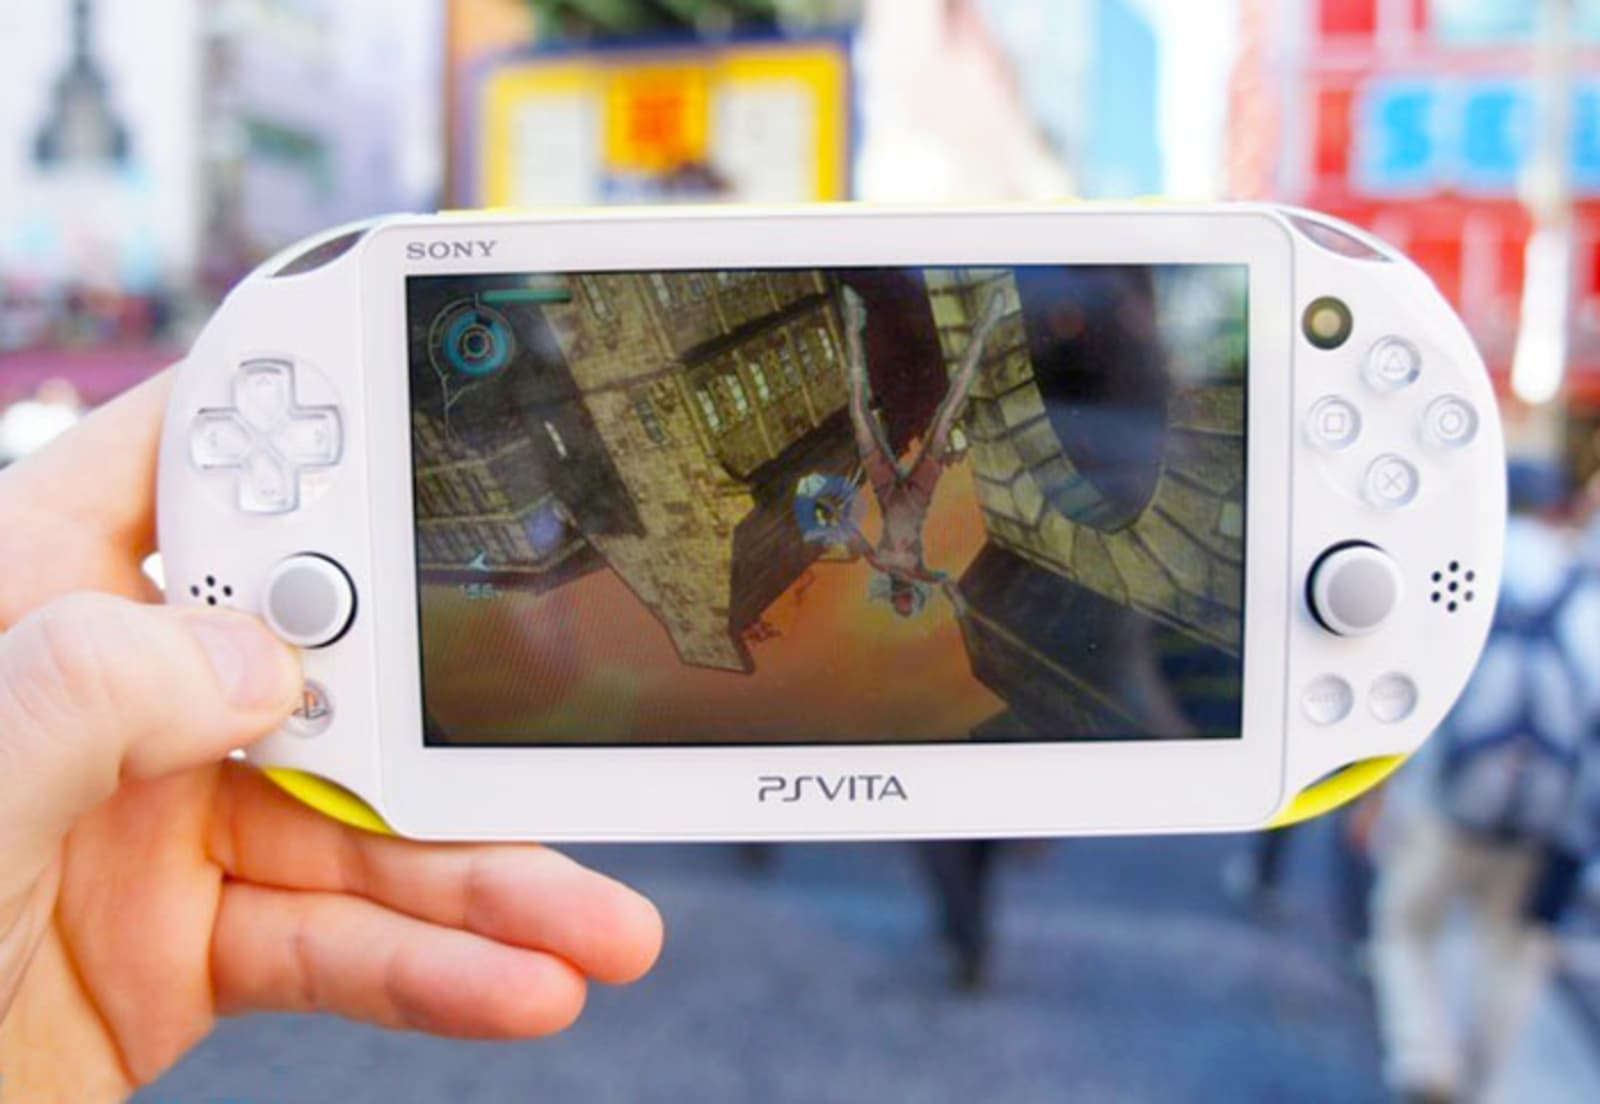 You can now overclock your PlayStation Vita for reasons